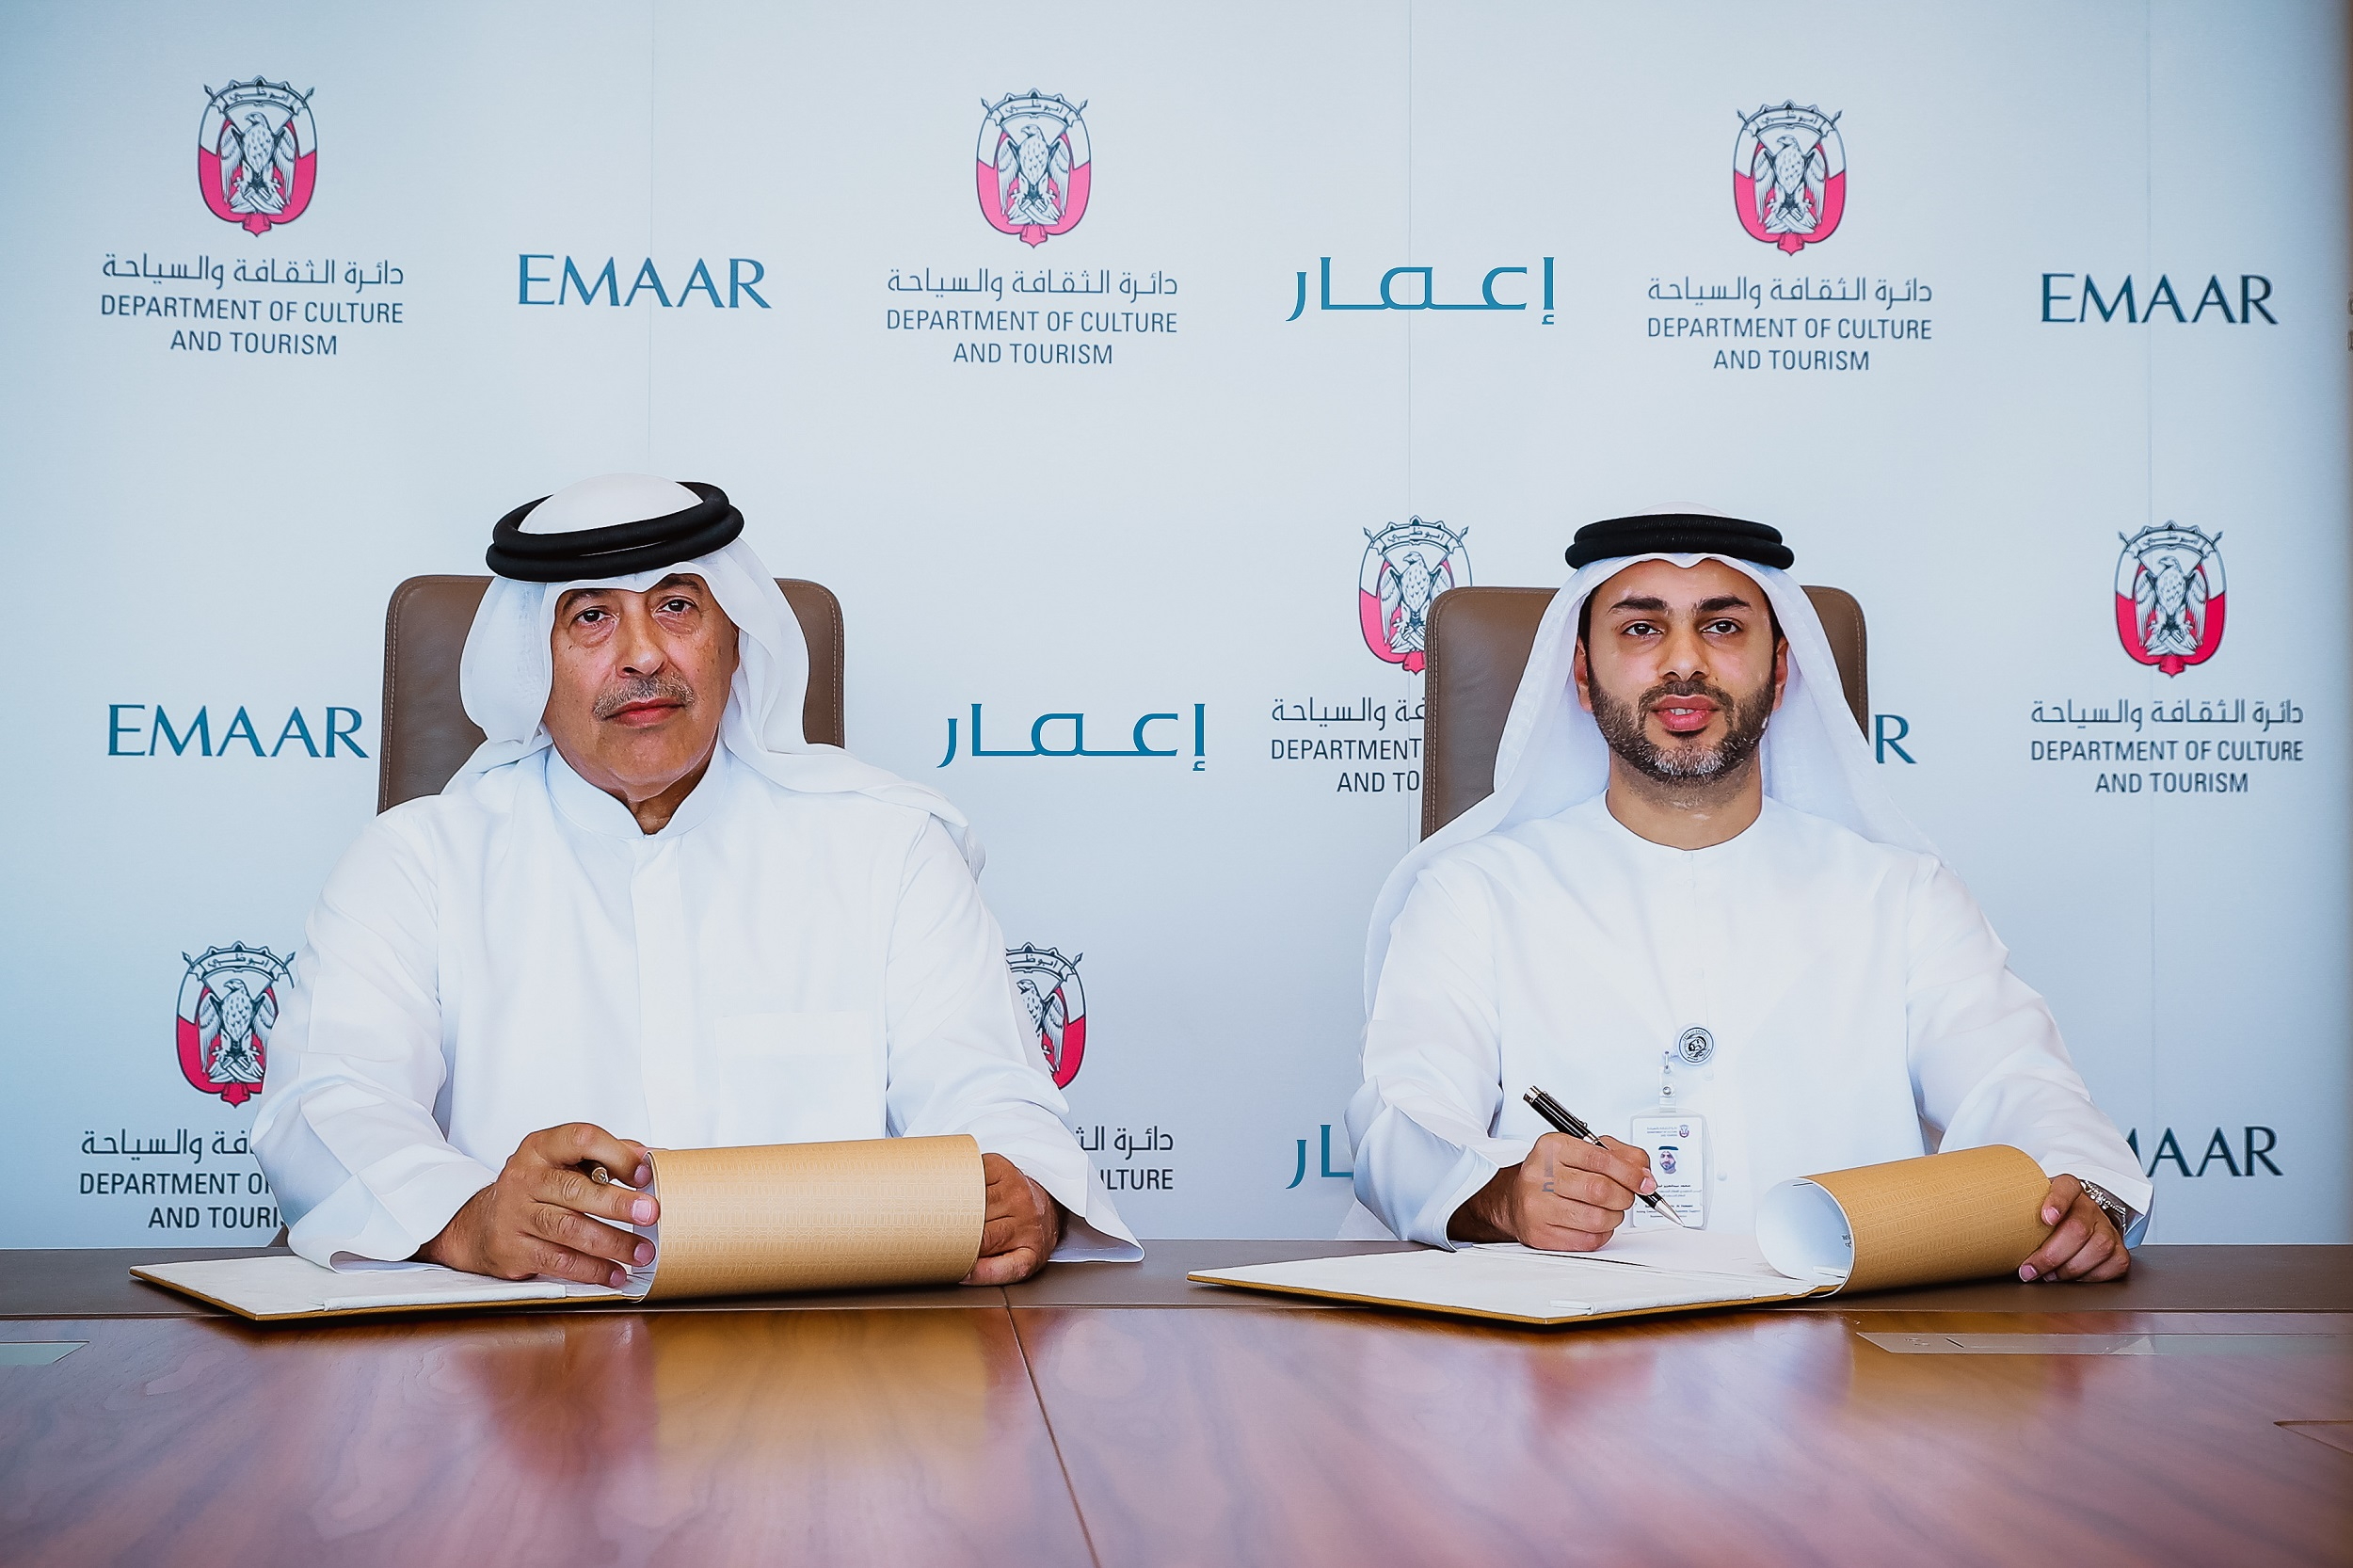 dct abu dhabi, emaar sign agreement, support local publishing industry